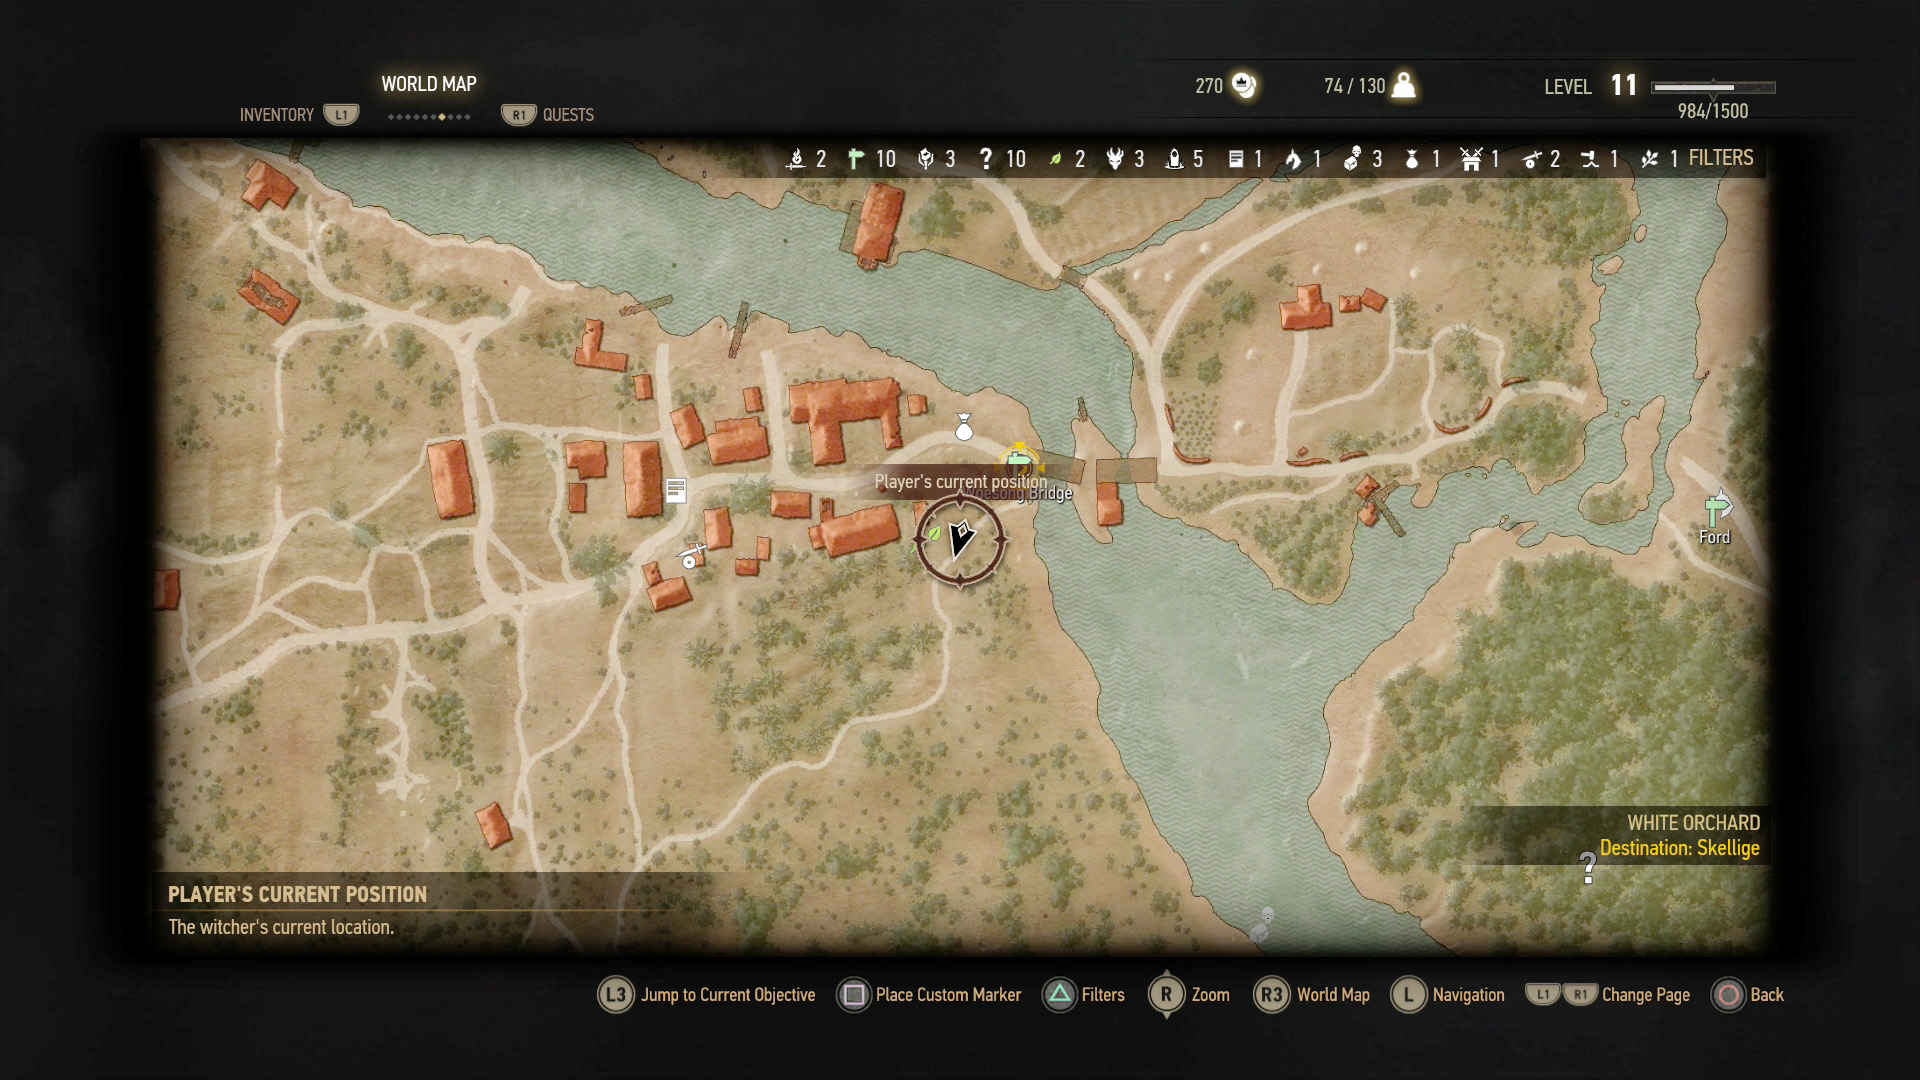 How to Earn Infinite Crowns in The Witcher 3 | USgamer